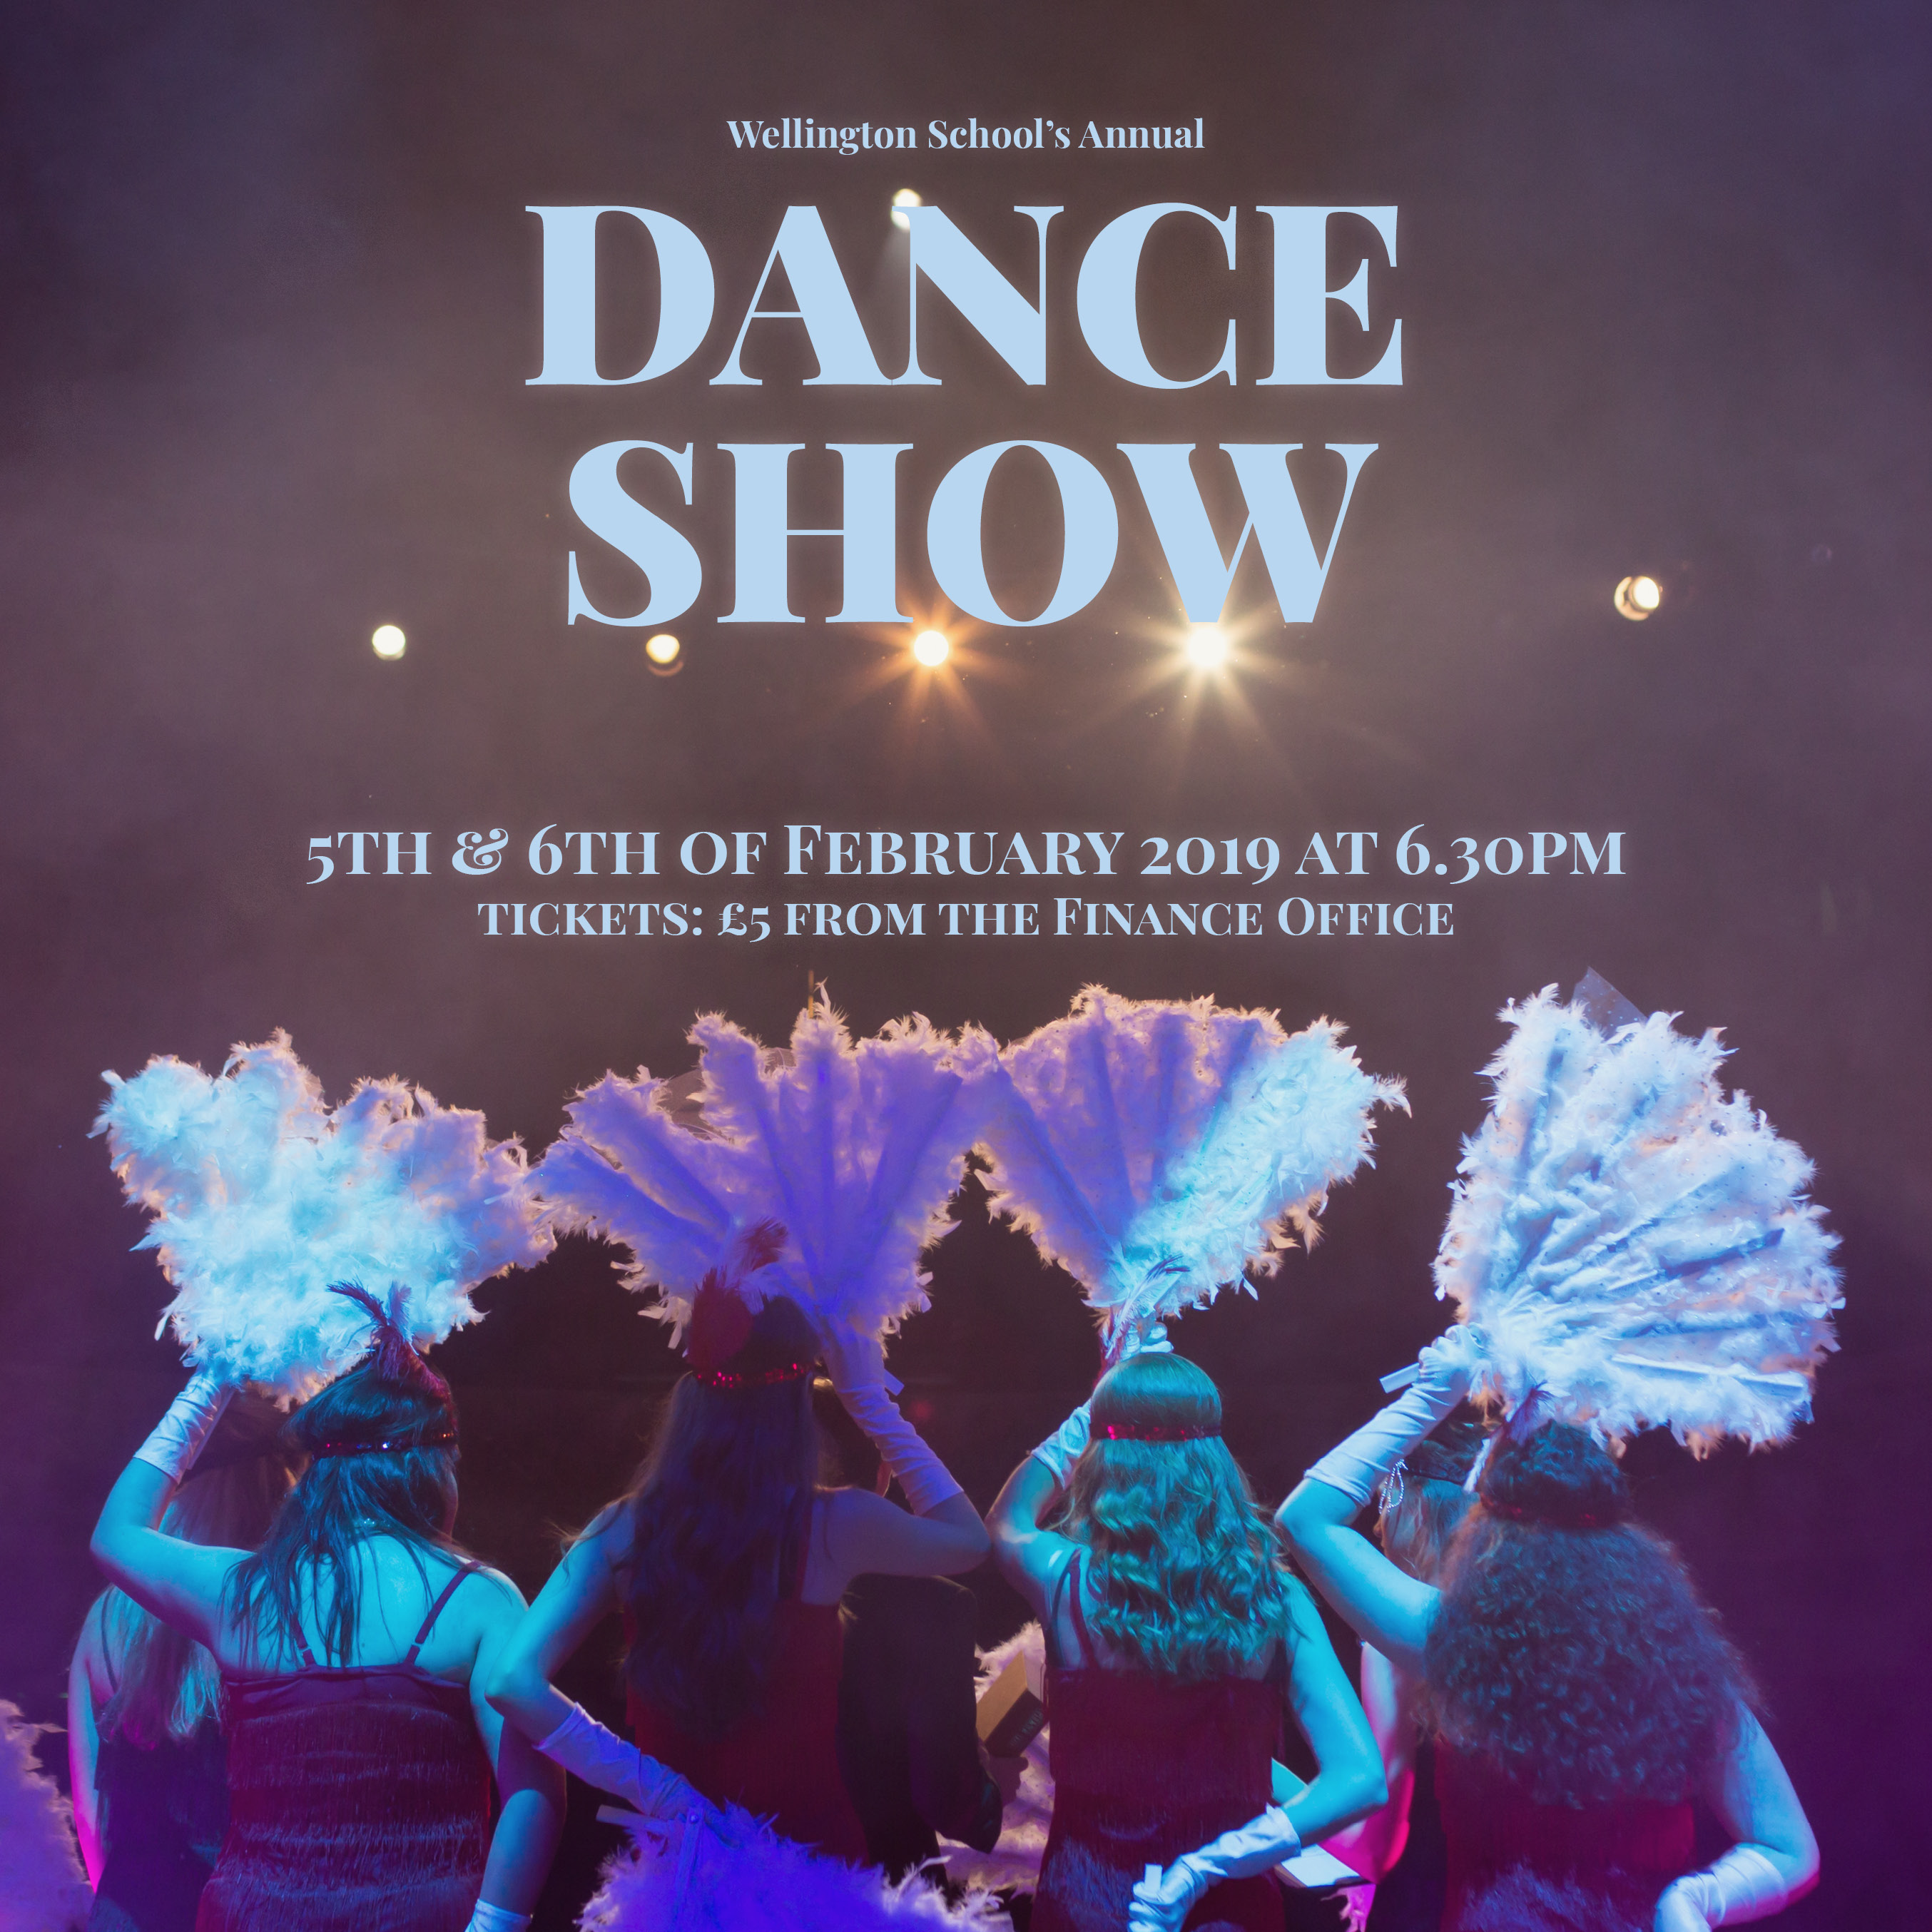 dance-show-2019-advert-web